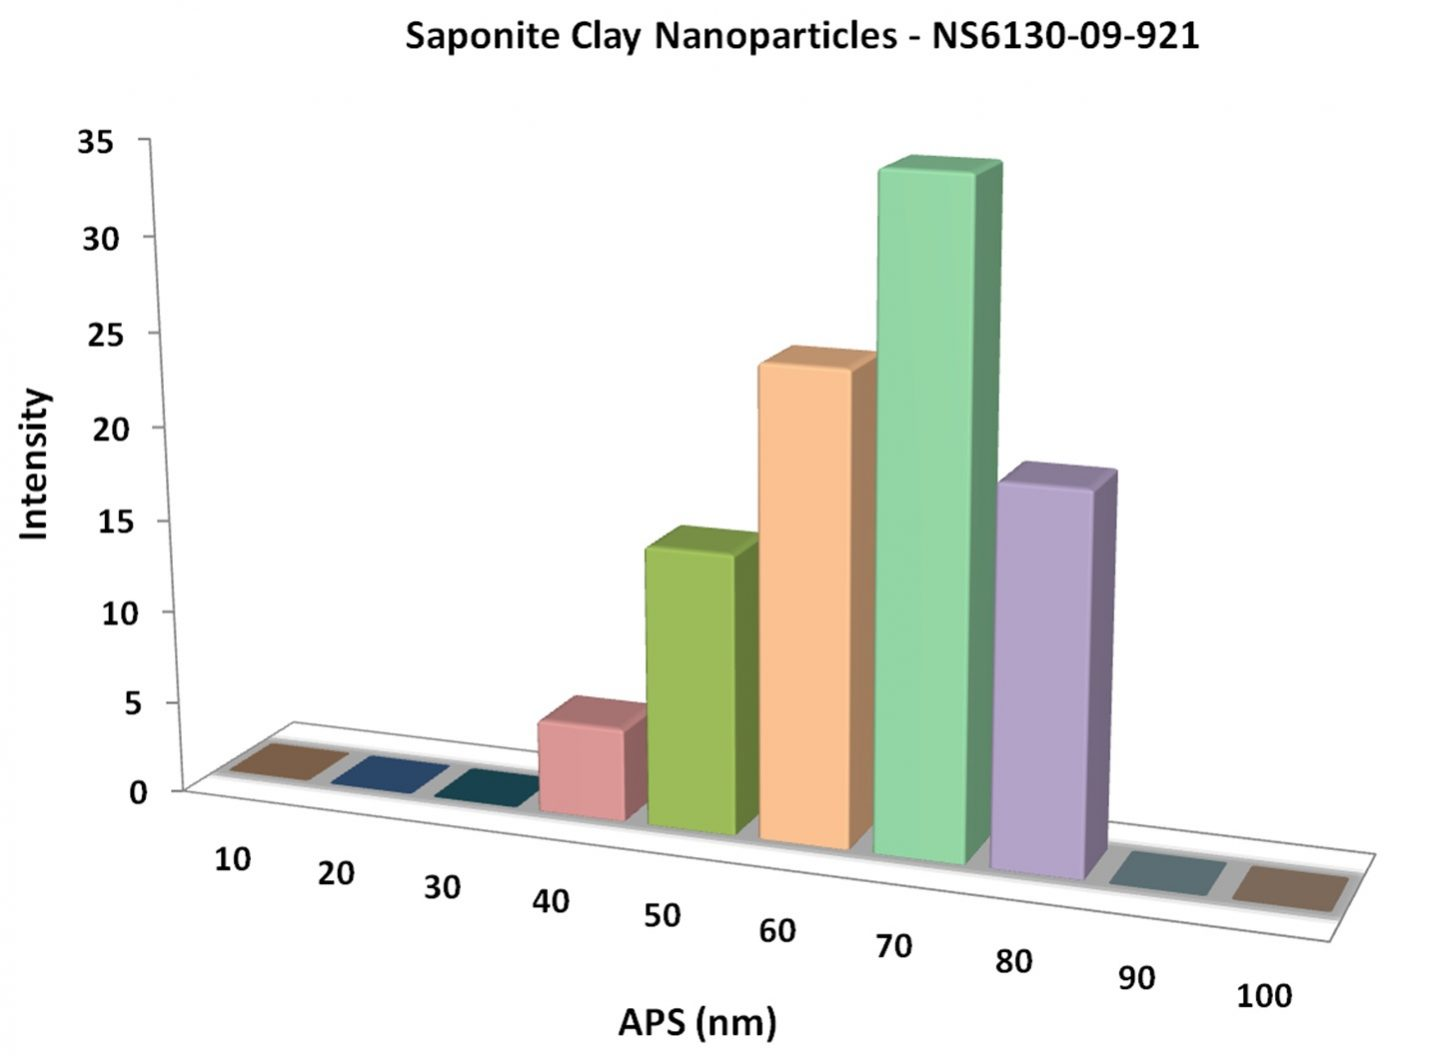 Particles Size Analysis - Saponite Clay Nanoparticles